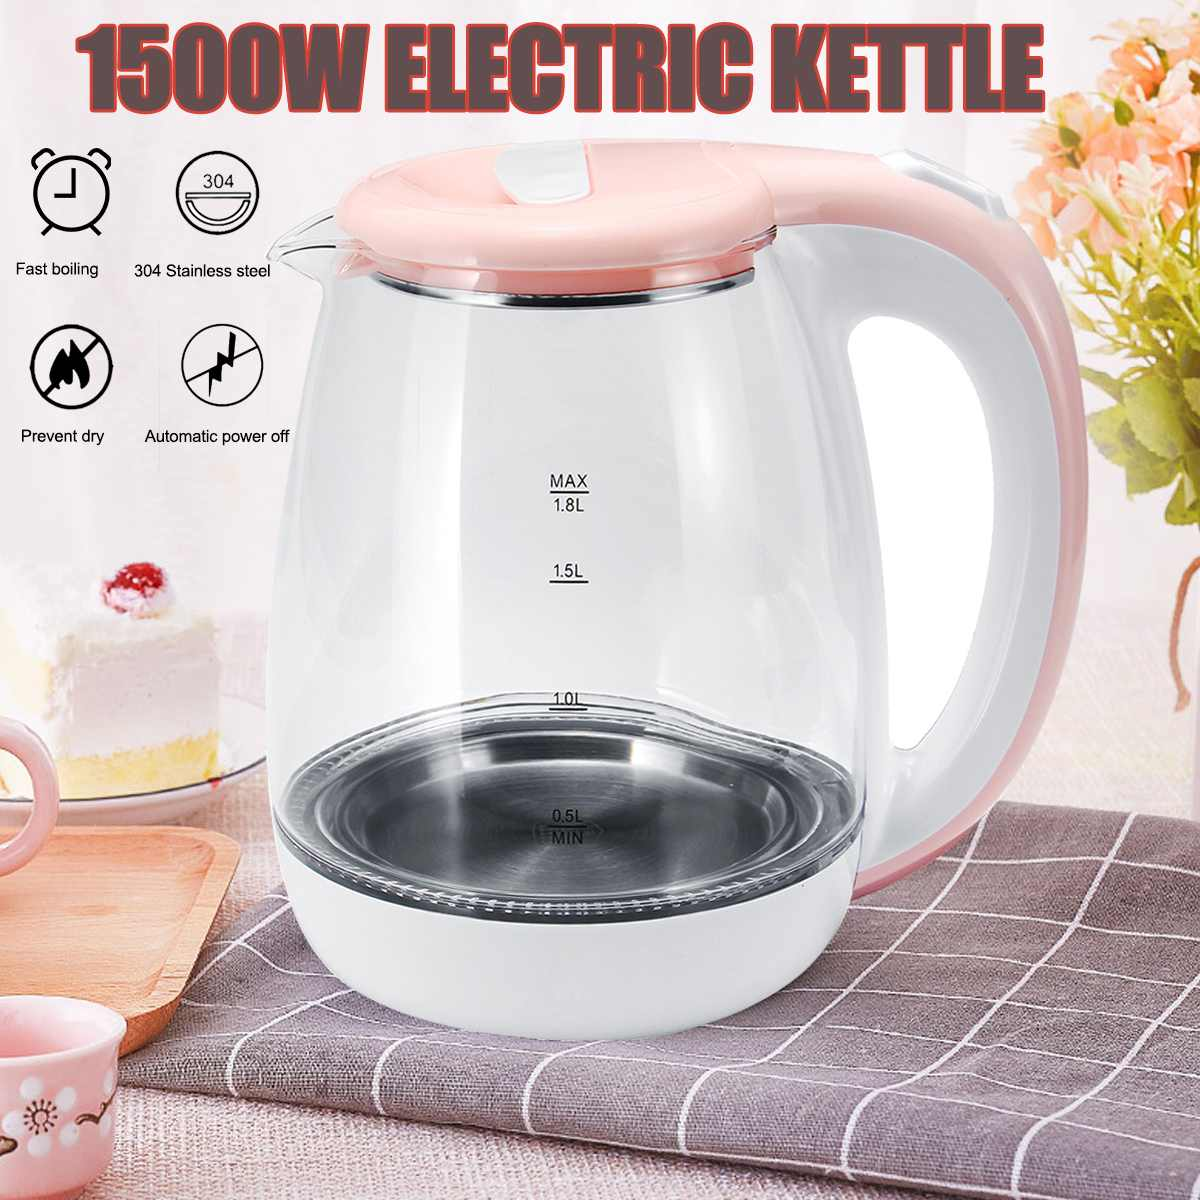 1.8L 304 Stainless Steel Automatically Power Off Electric Kettles Household Kitchen Appliances Water Heating Boiler Pot1.8L 304 Stainless Steel Automatically Power Off Electric Kettles Household Kitchen Appliances Water Heating Boiler Pot